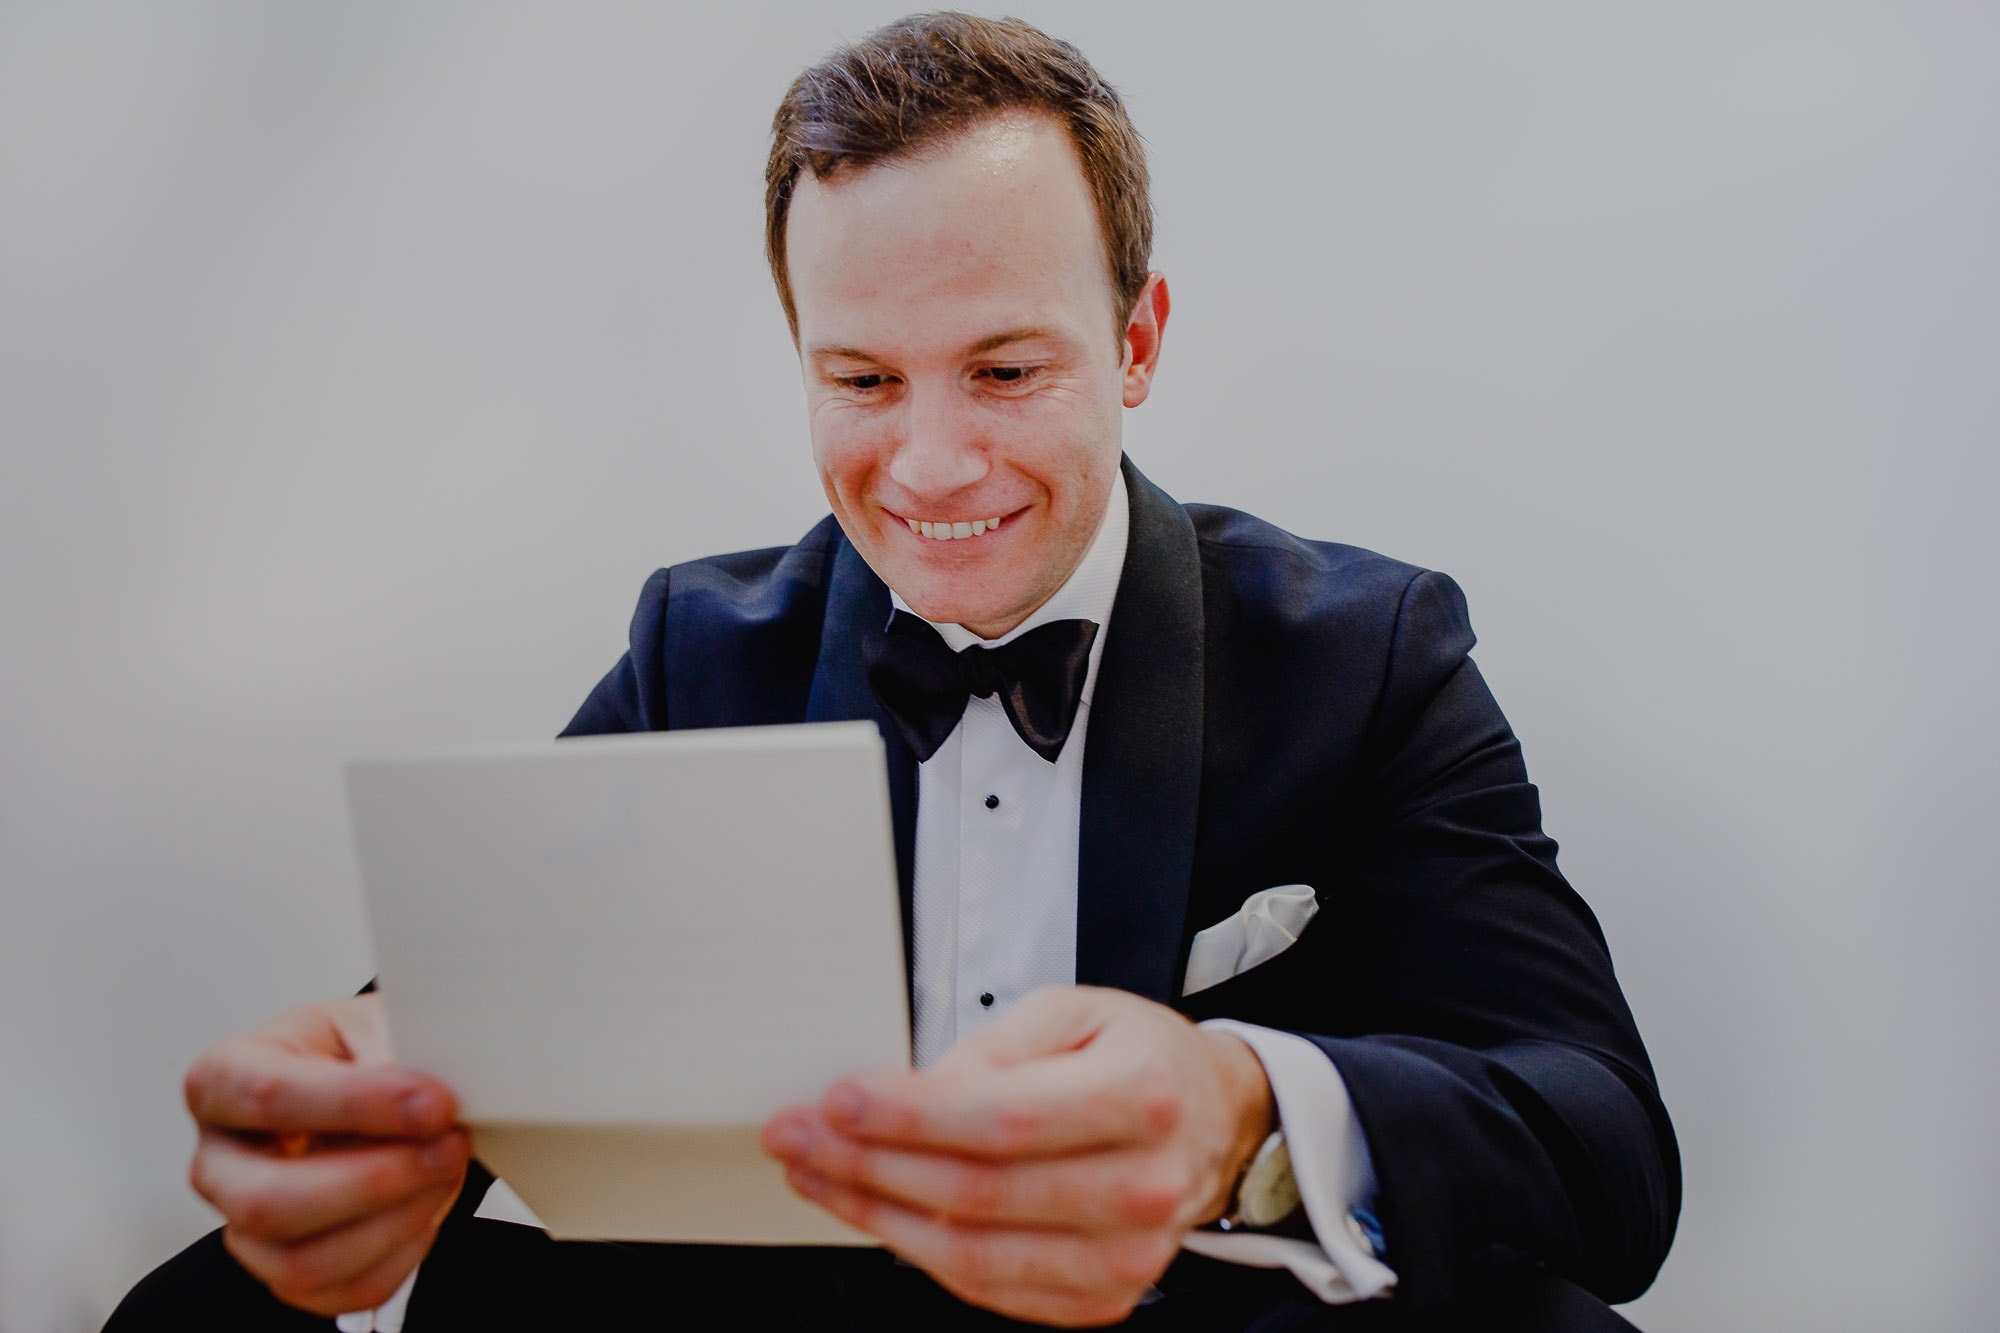 Groom read letter from his bride.